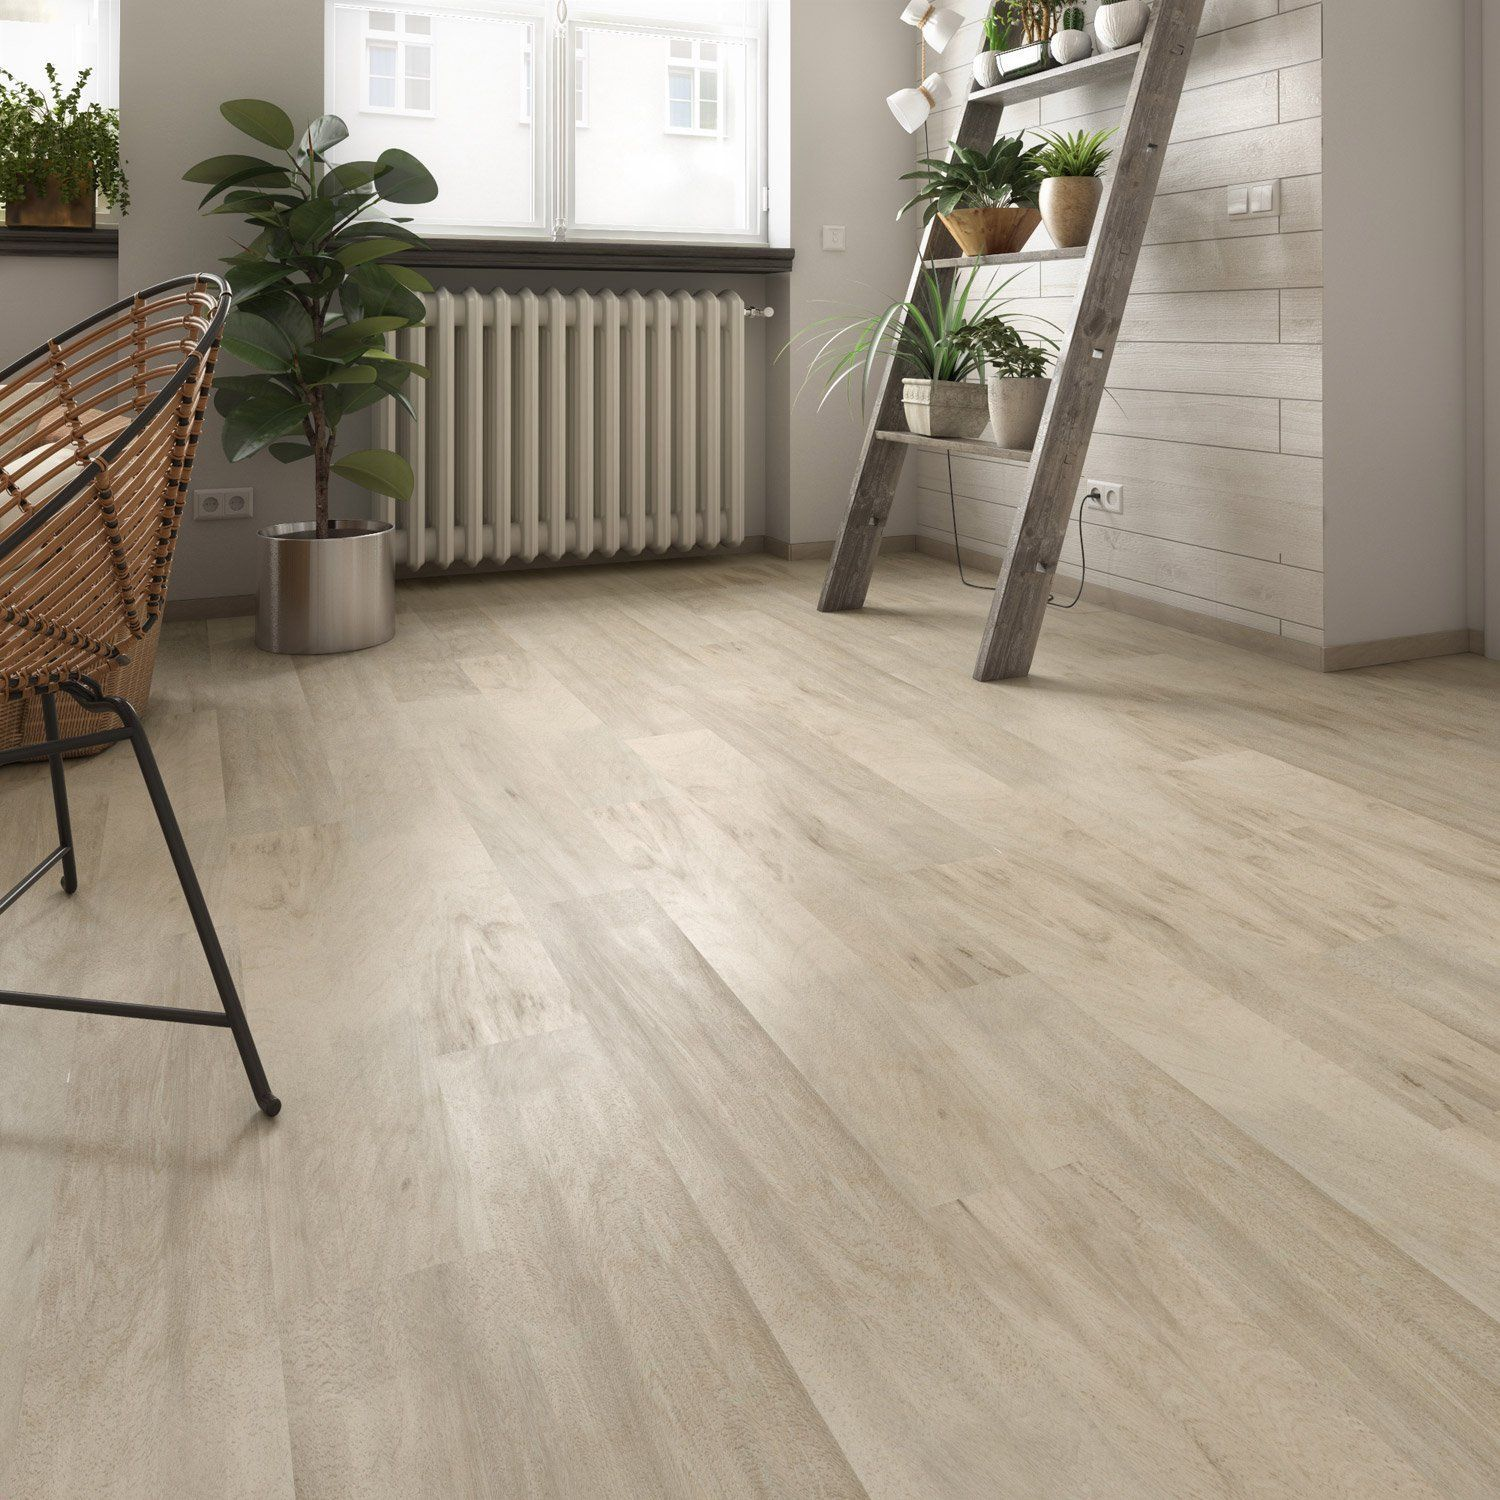 Lame PVC clipsable authentic blond GERFLOR Senso premium - Lame de